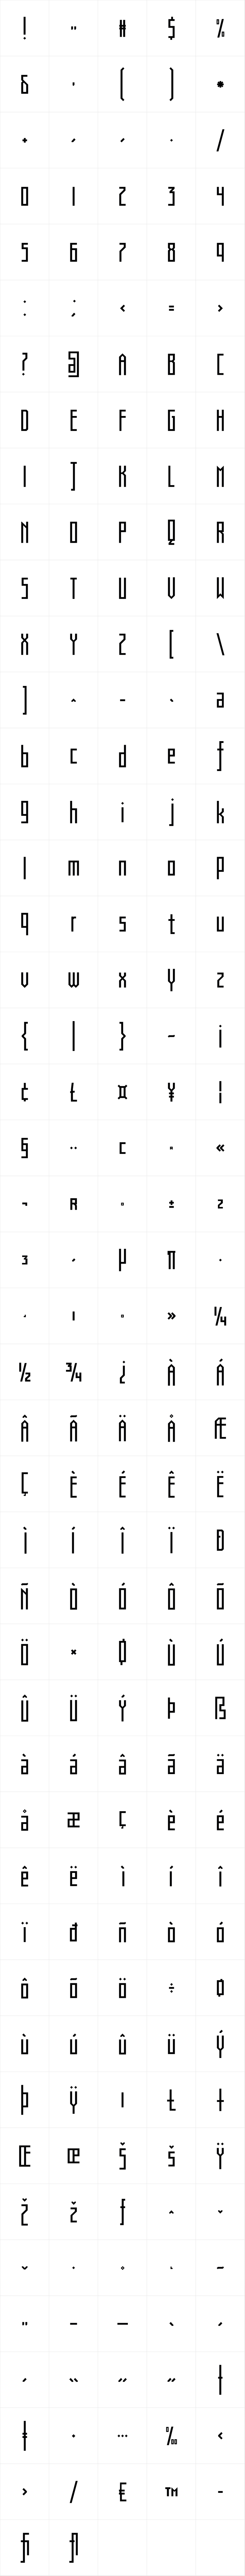 Muzarela Semi condensed Regular